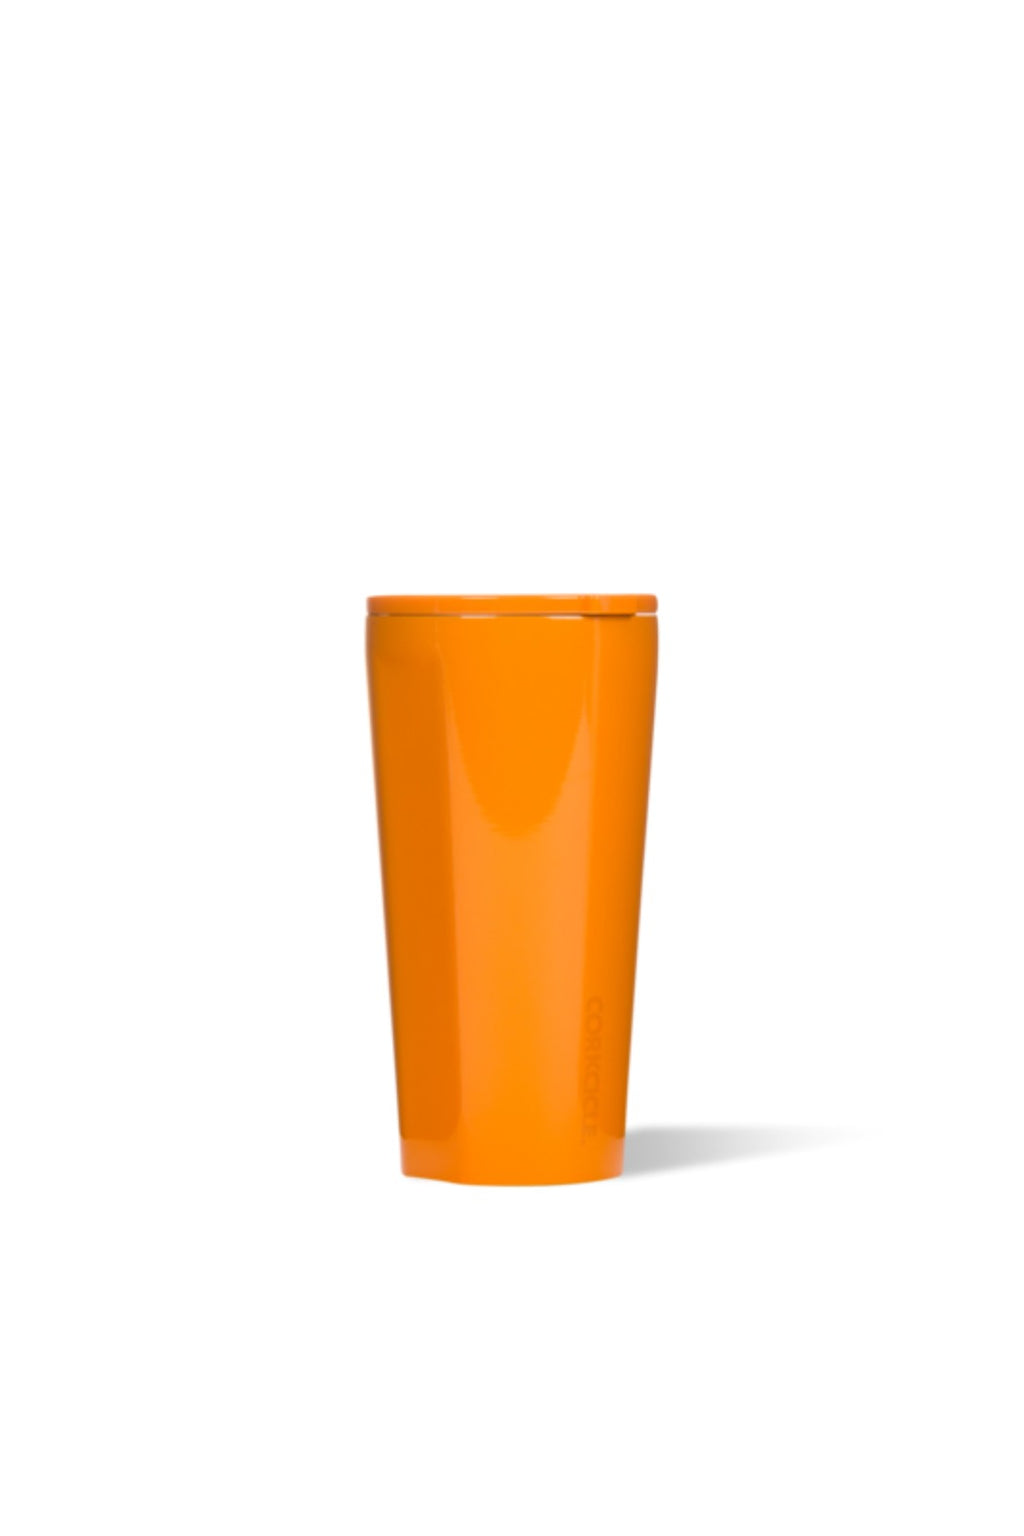 Corkcicle 16 oz. Tumbler in Dipped Clementine